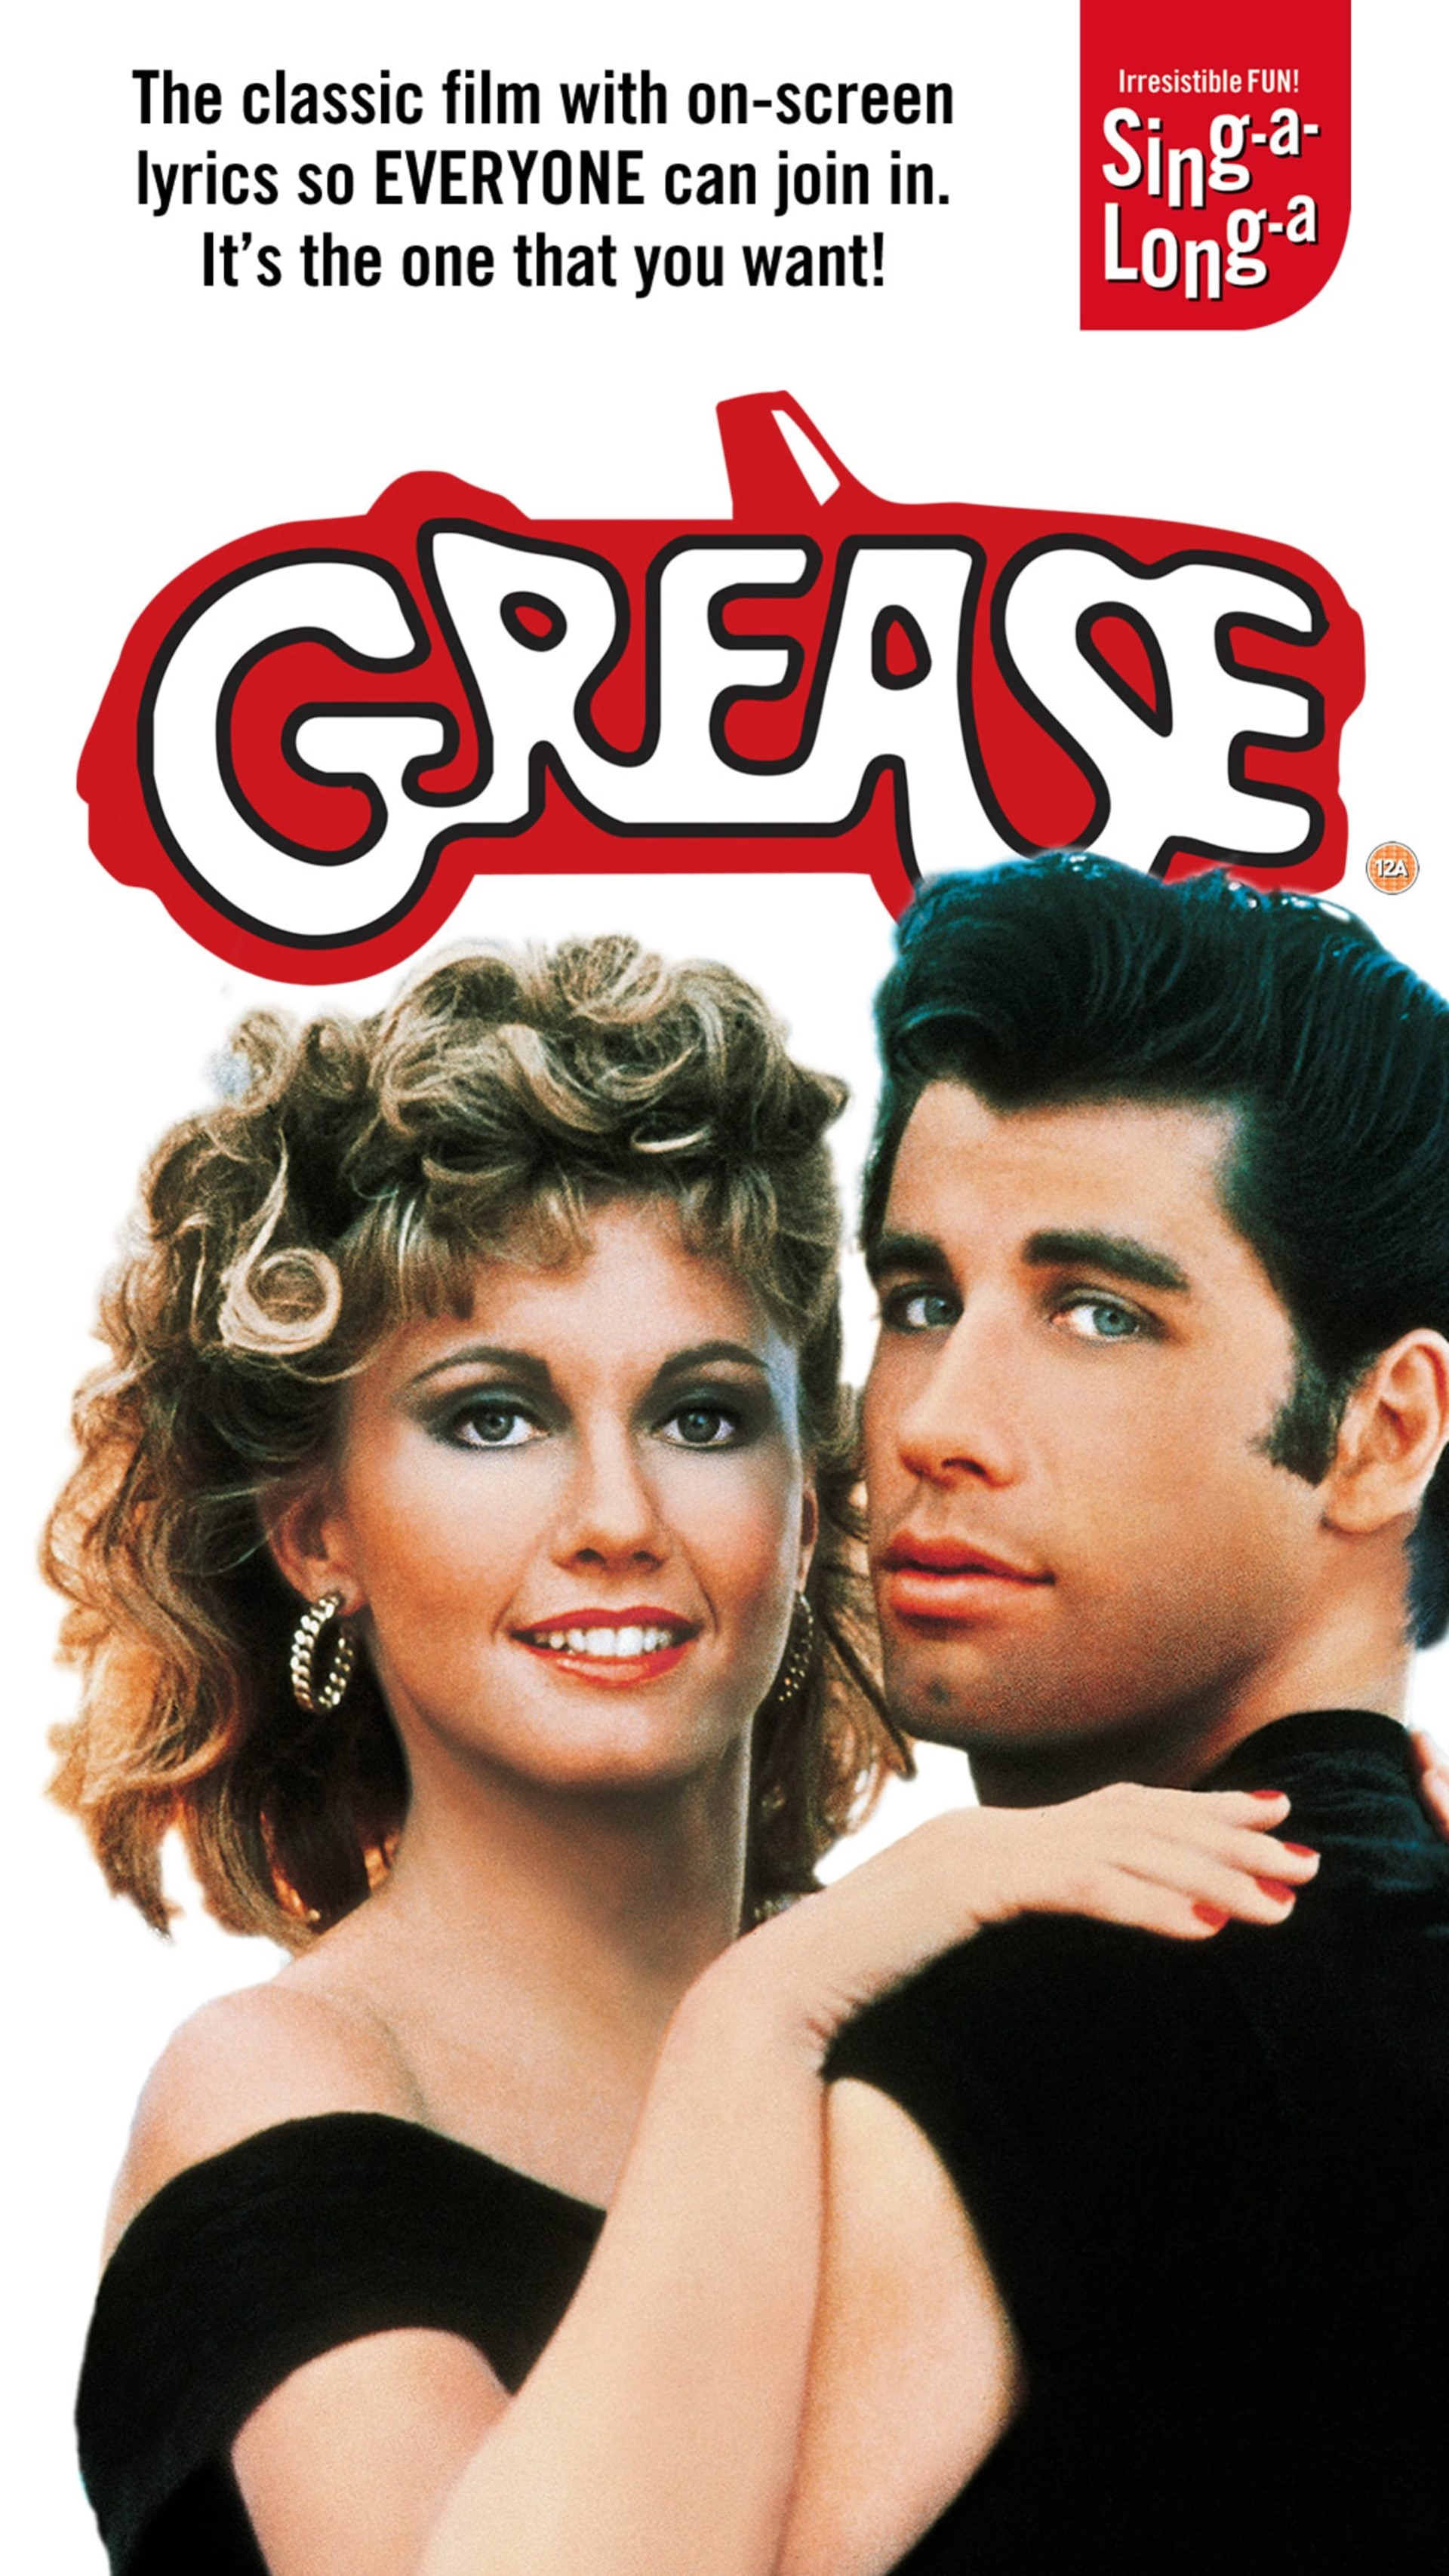 Poster for Sing-a-Long-a Grease at New Theatre Oxford